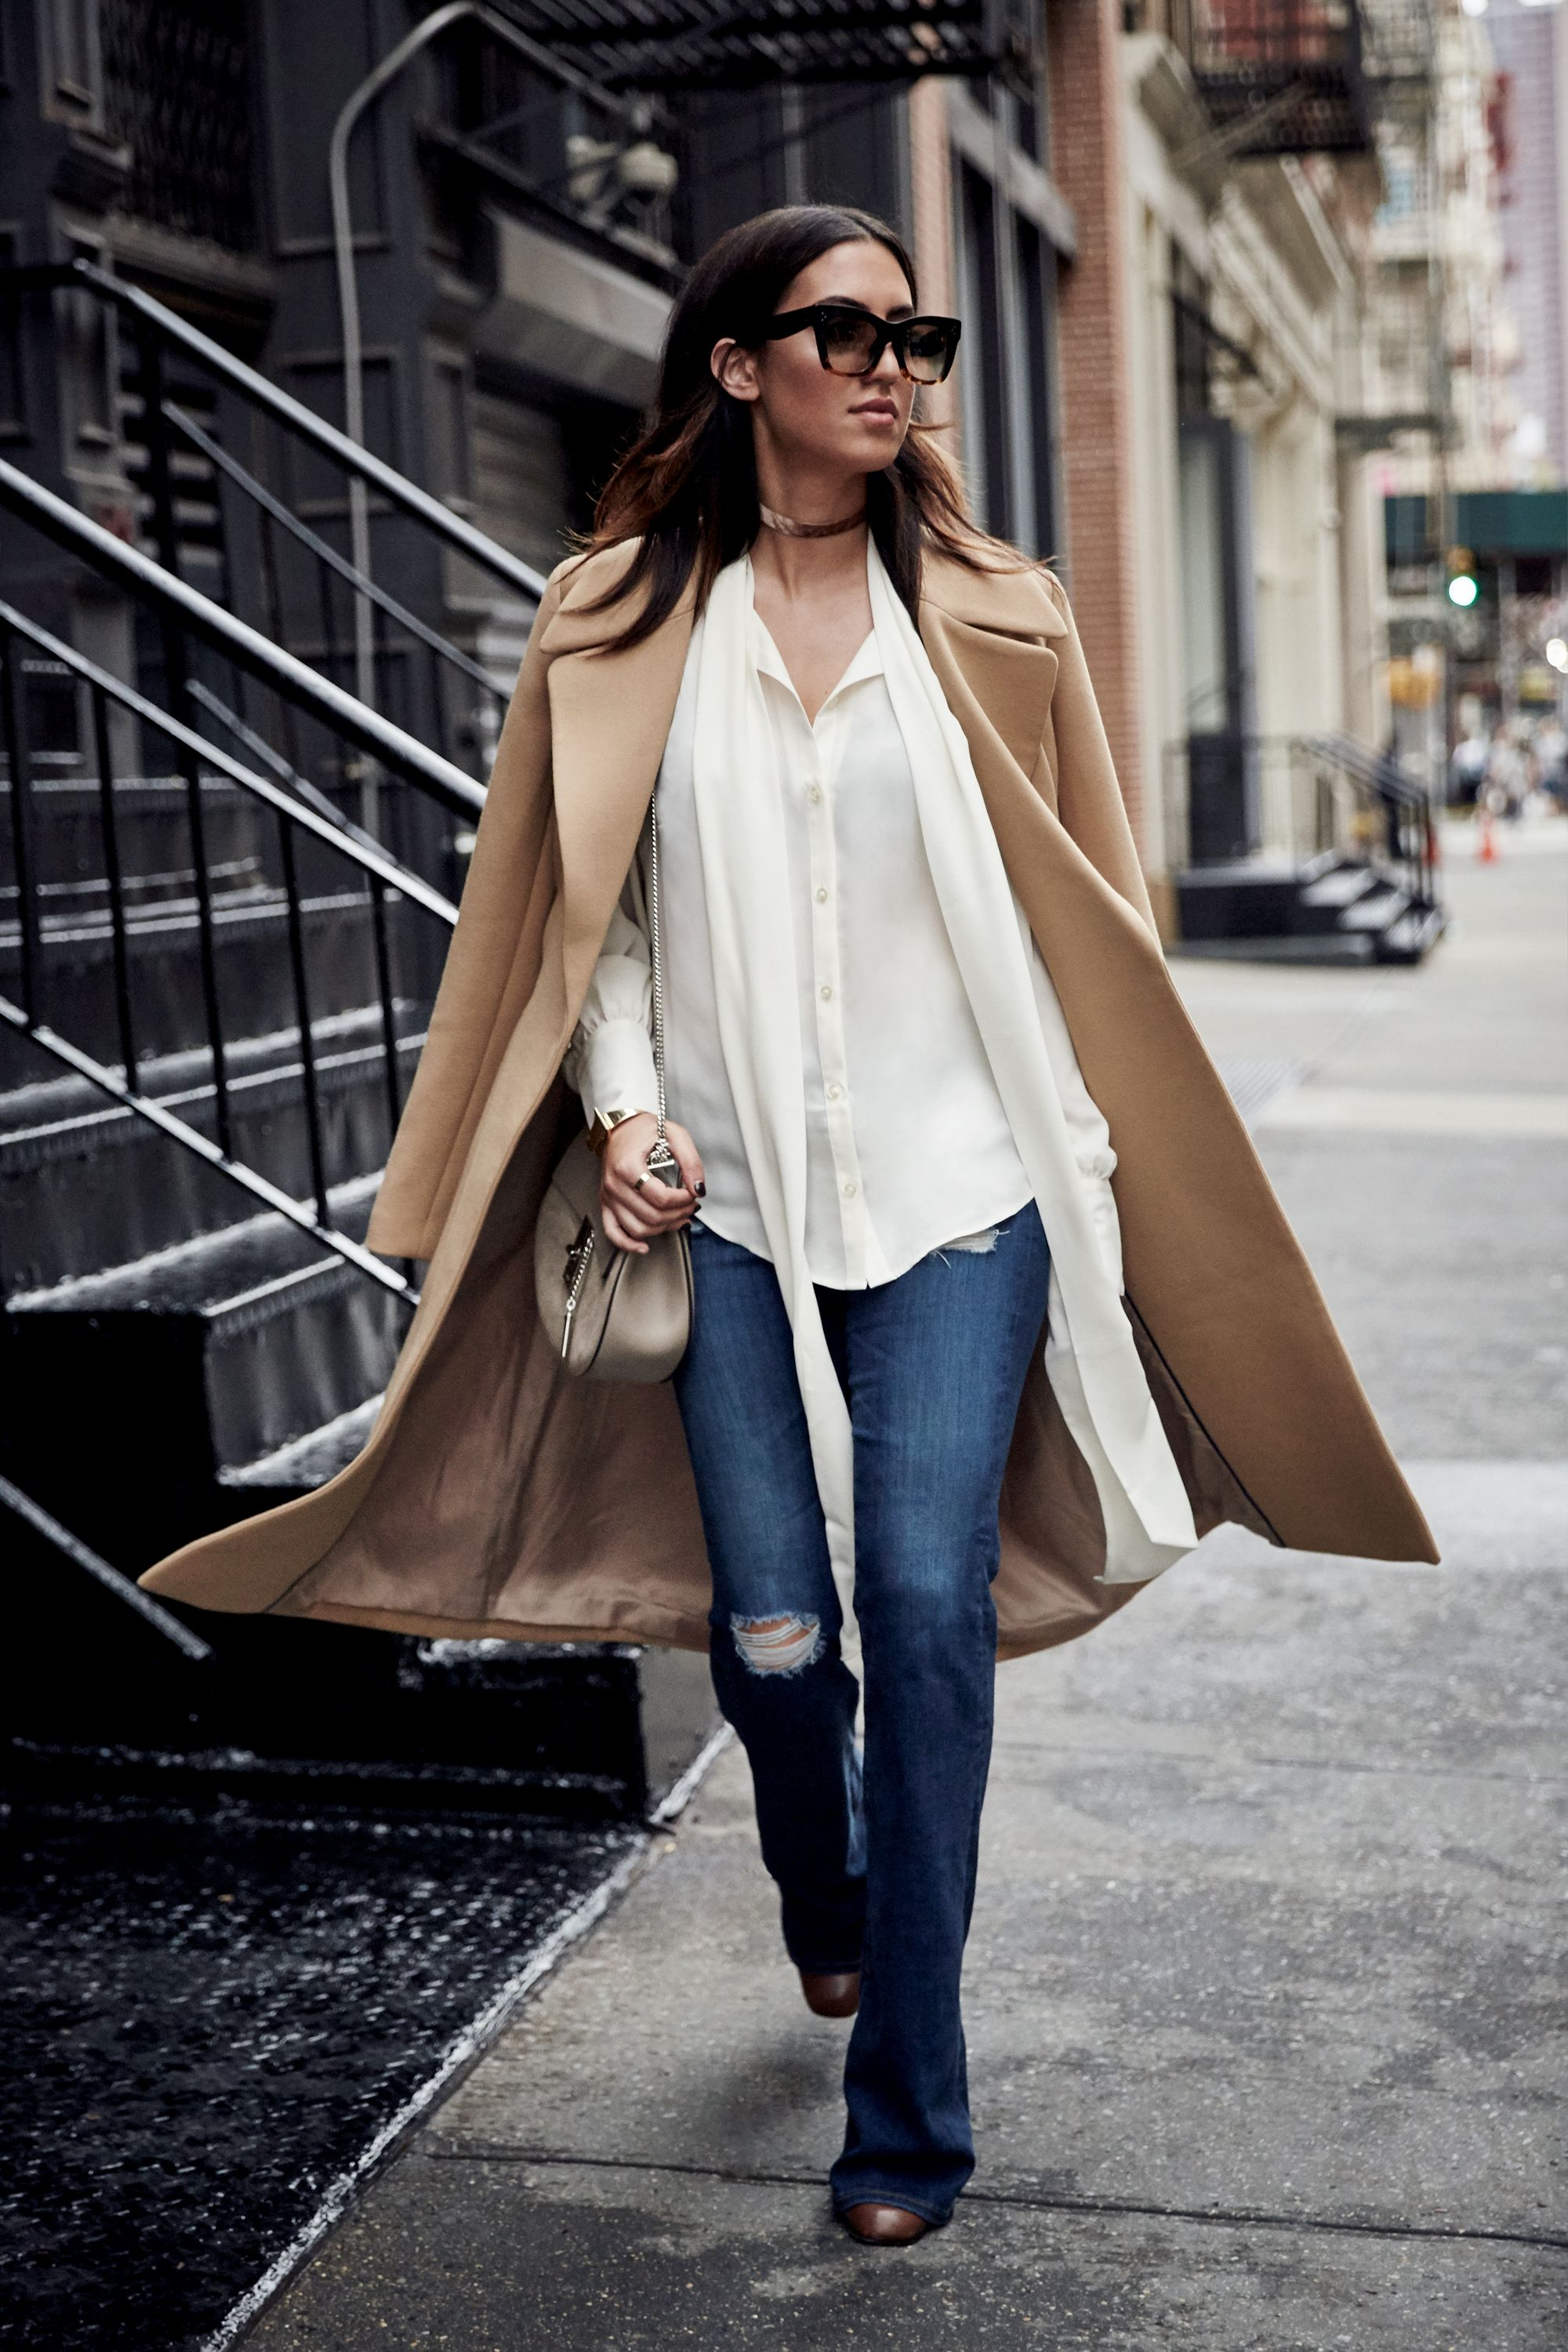 """<p>To mix up an otherwise classic outfit, look for pieces with a fanciful twist, like an undone tie-neckblouse and flared jeans with a tough-girl tear.Throwa versatile camel coatover your shoulders fora bit of cool-girlcharm.</p><p><br> </p><p><em data-redactor-tag=""""em"""">Canvas by Lands' End Women's Bow Tie Blouse, $79, <a href=""""http://www.landsend.com/products/womens-bow-tie-blouse/id_303218?sku_0=::IVO"""" target=""""_blank"""">landsend.com</a>;<em data-redactor-tag=""""em"""">Canvas by Lands' End</em><span class=""""redactor-invisible-space"""" data-verified=""""redactor"""" data-redactor-tag=""""span"""" data-redactor-class=""""redactor-invisible-space"""">Women's Wrap Trench Coat, $325, <a href=""""http://www.landsend.com/products/womens-wrap-trench-coat/id_302710?sku_0=::CAM"""" target=""""_blank"""">landsend.com</a></span></em></p>"""